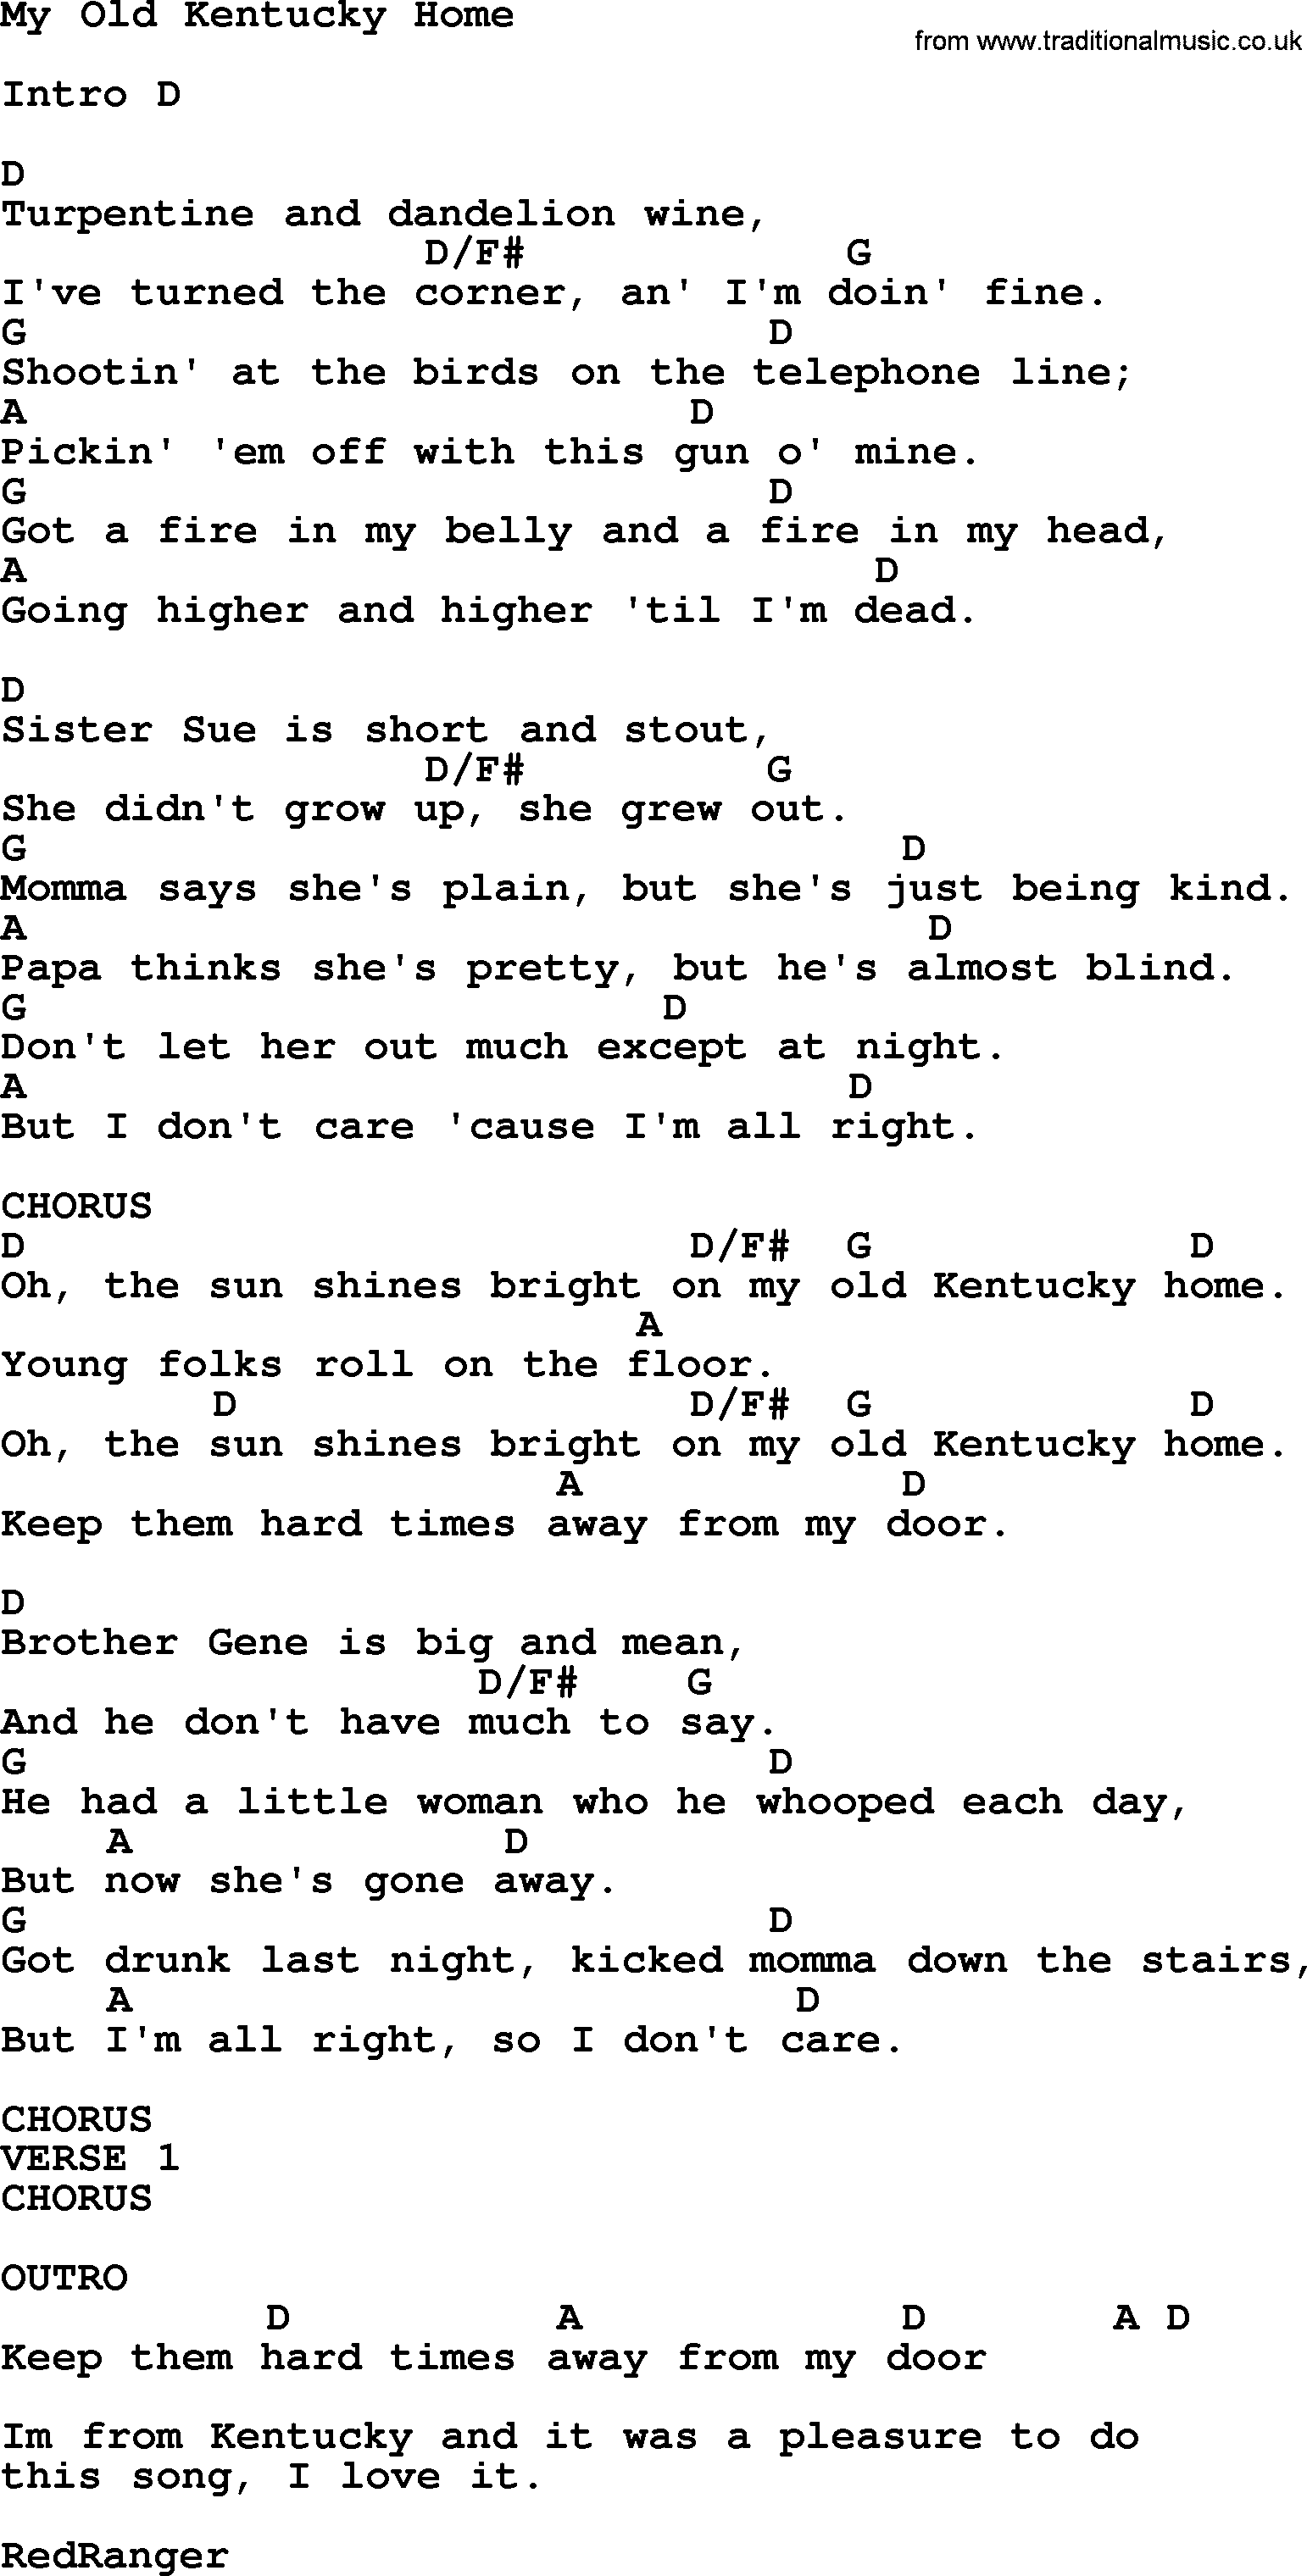 Johnny Cash song: My Old Kentucky Home, lyrics and chords